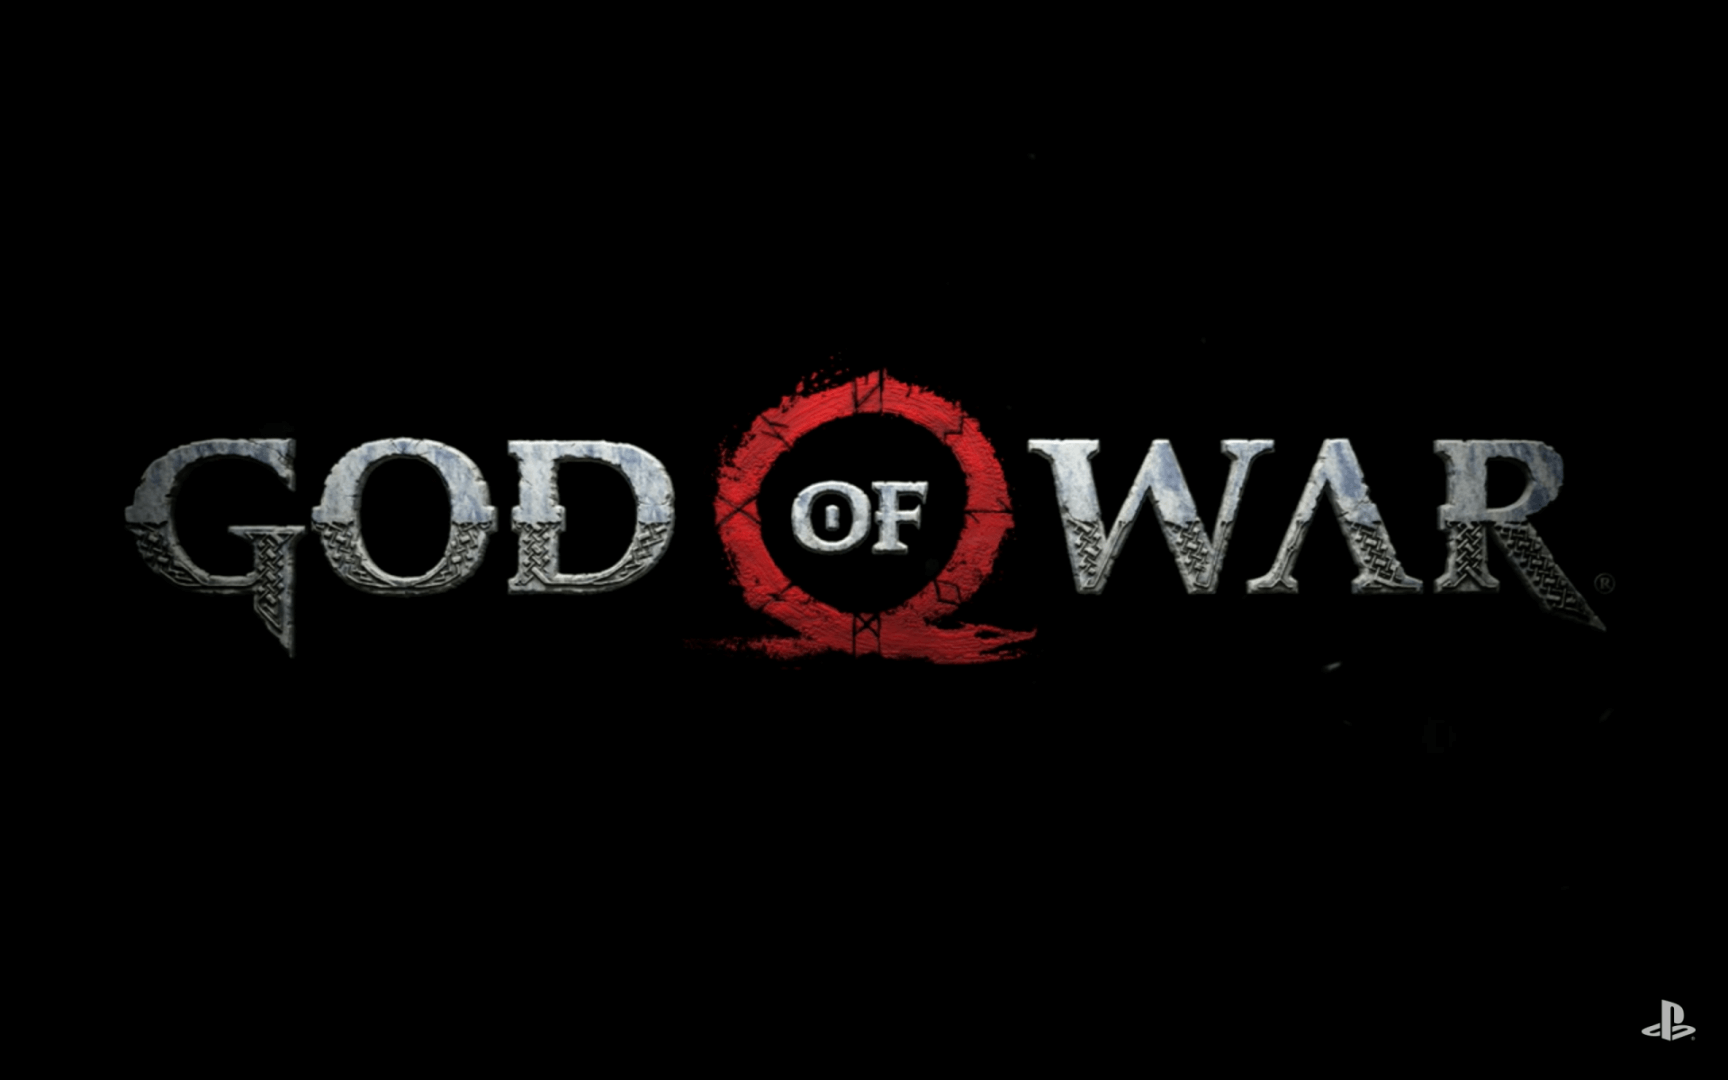 E3 2016: God of War Officially Revealed for PS4